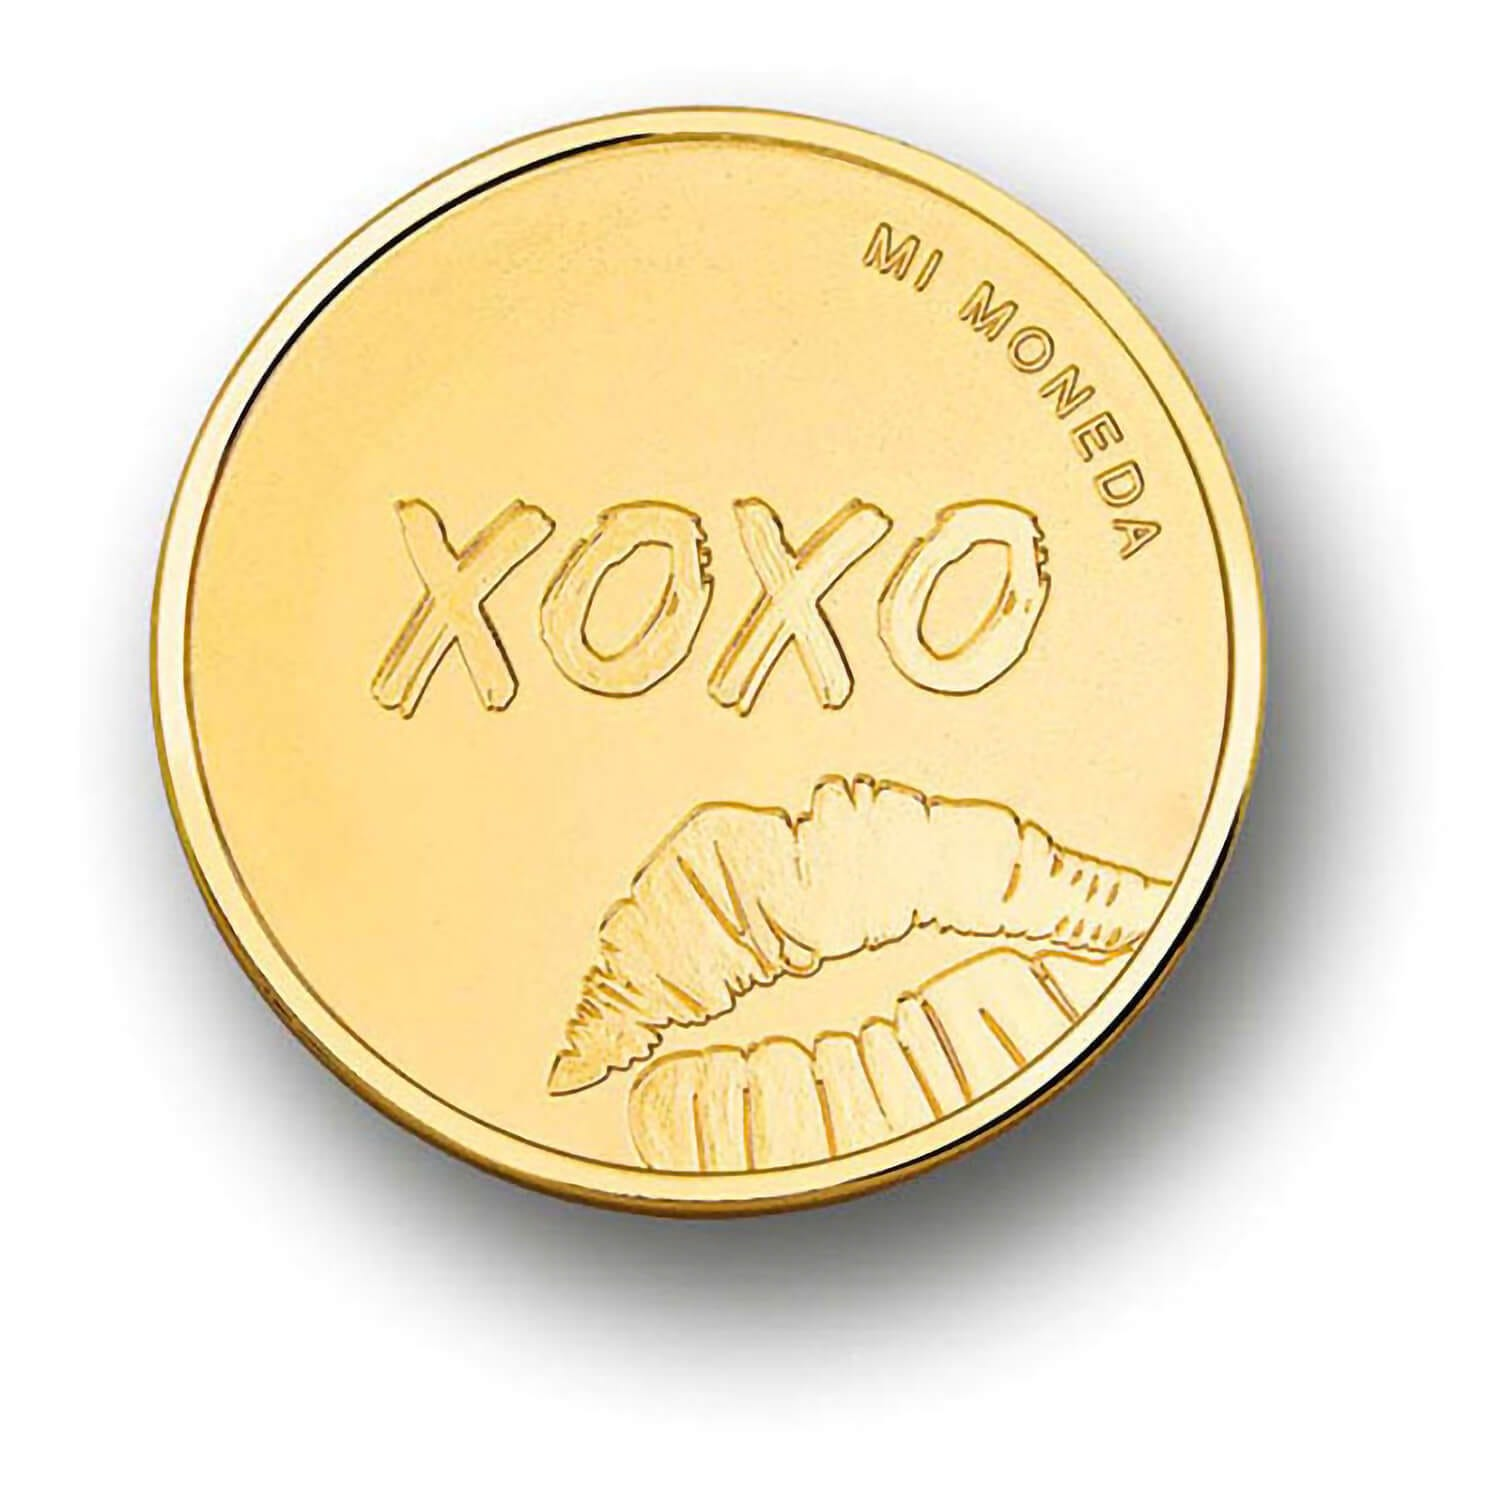 Mi Moneda Key to my Heart - EXCLUSIVE to Fields - Gold Plated Coin